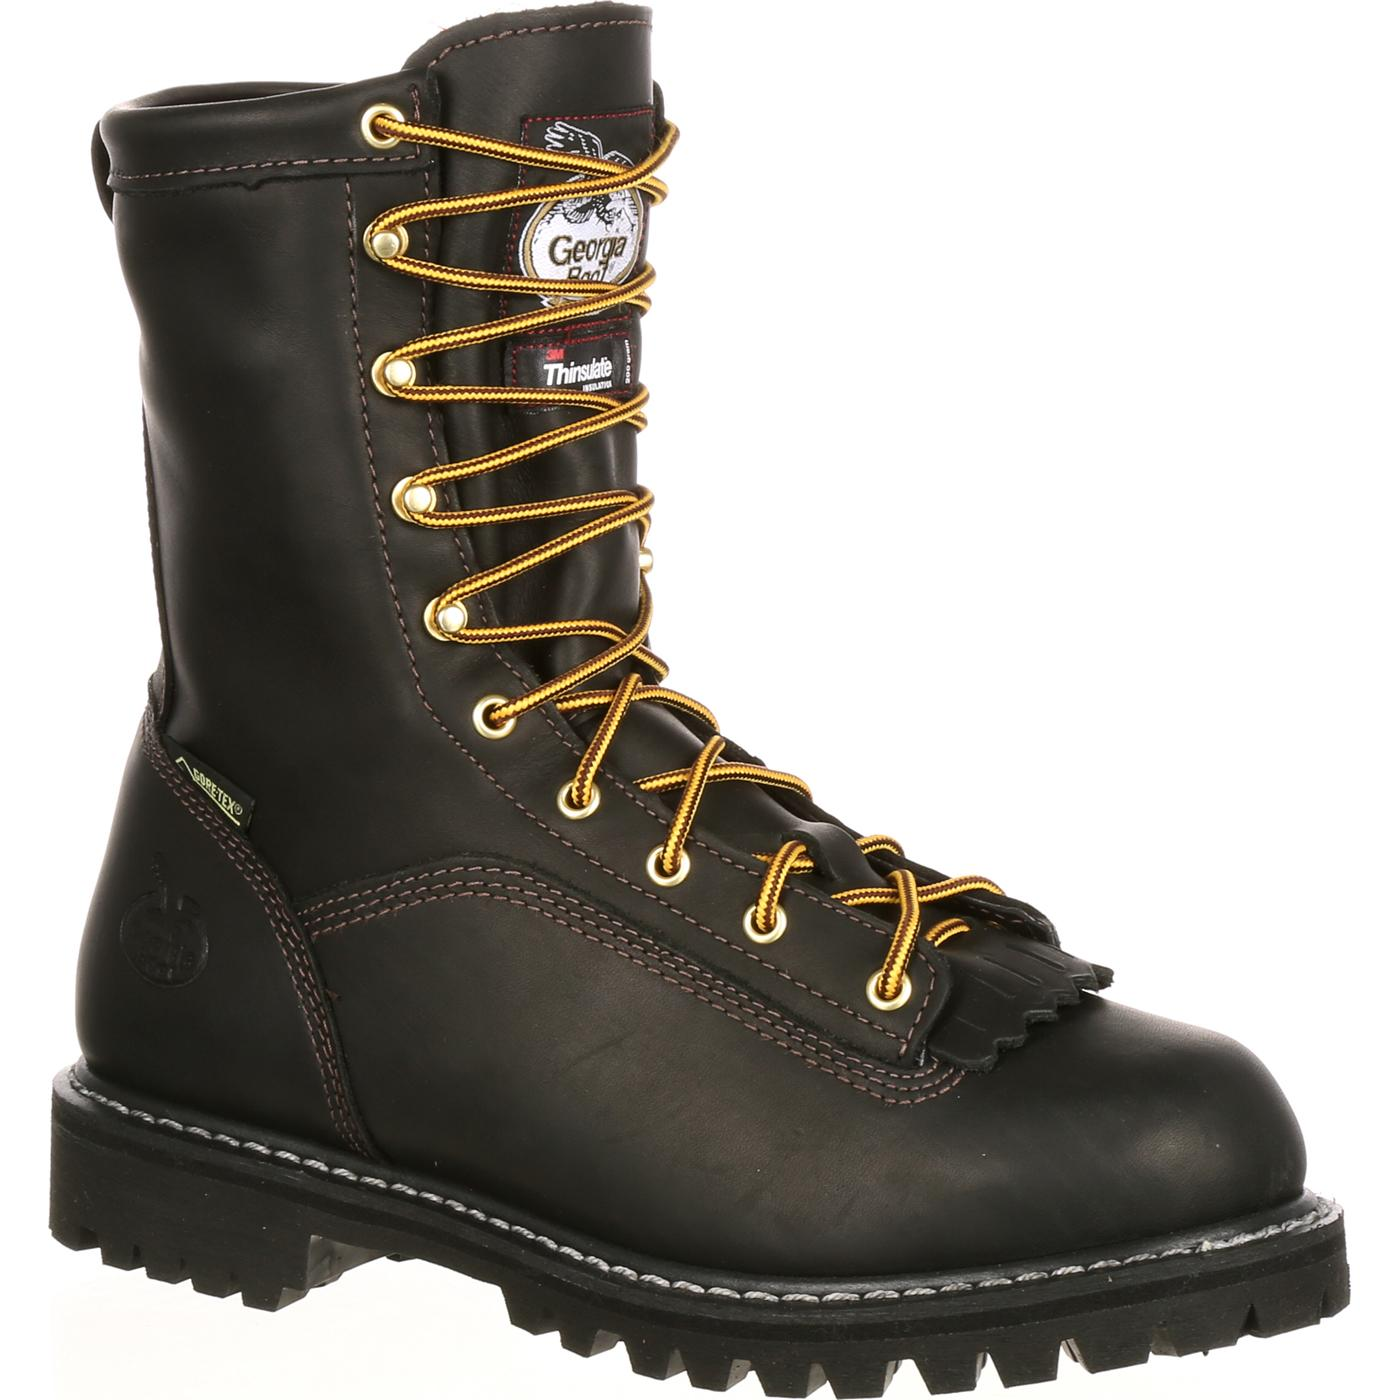 Men S Insulated Lace To Toe Work Boot Georgia Boot G8040